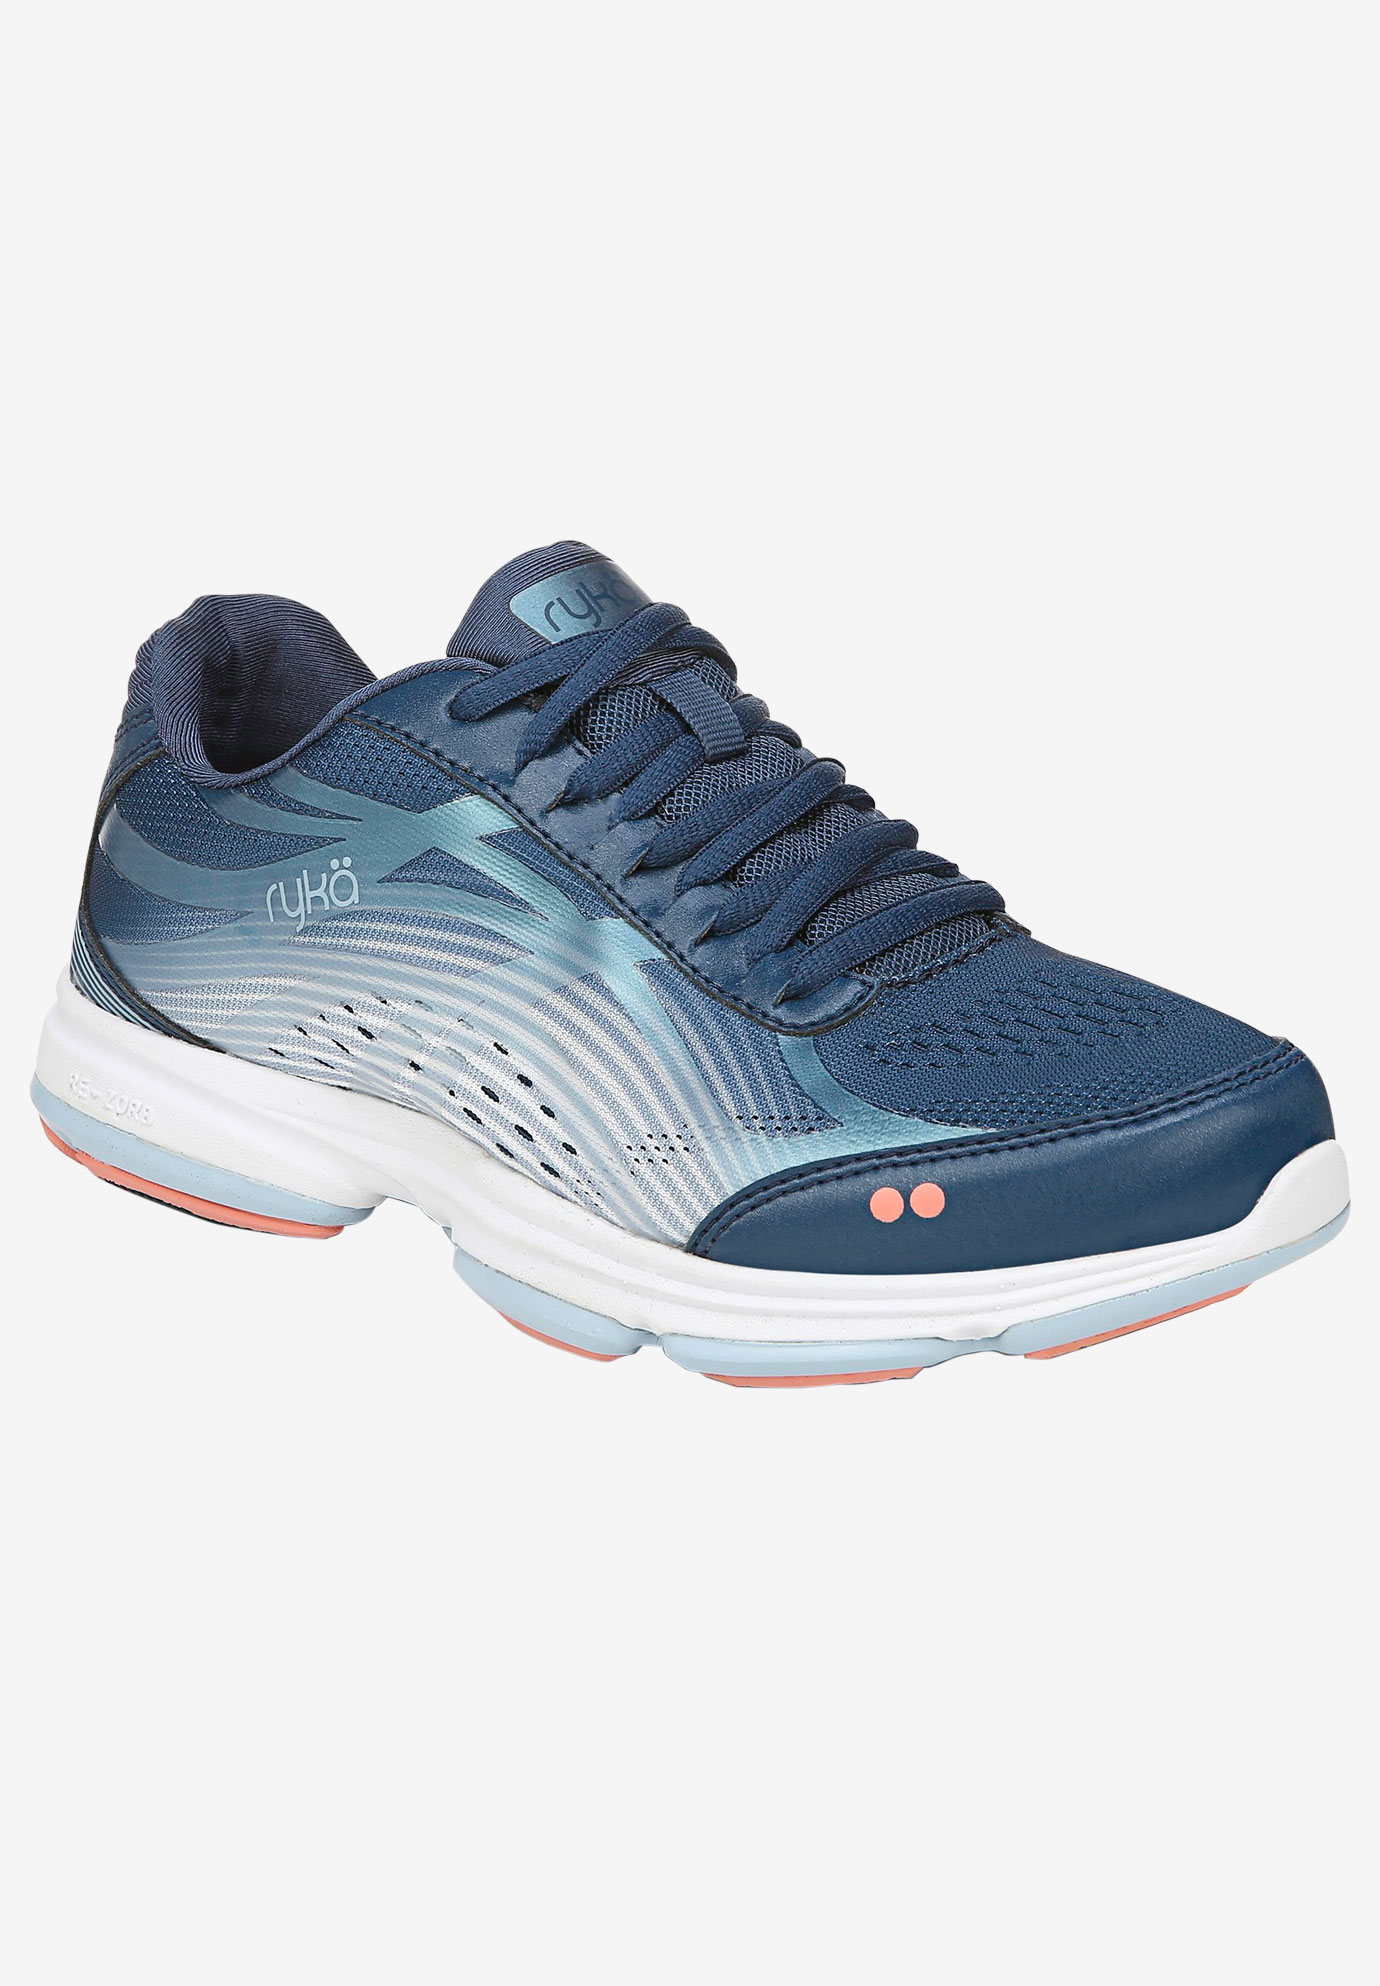 Devotion Plus 3 Sneaker by Ryka®,